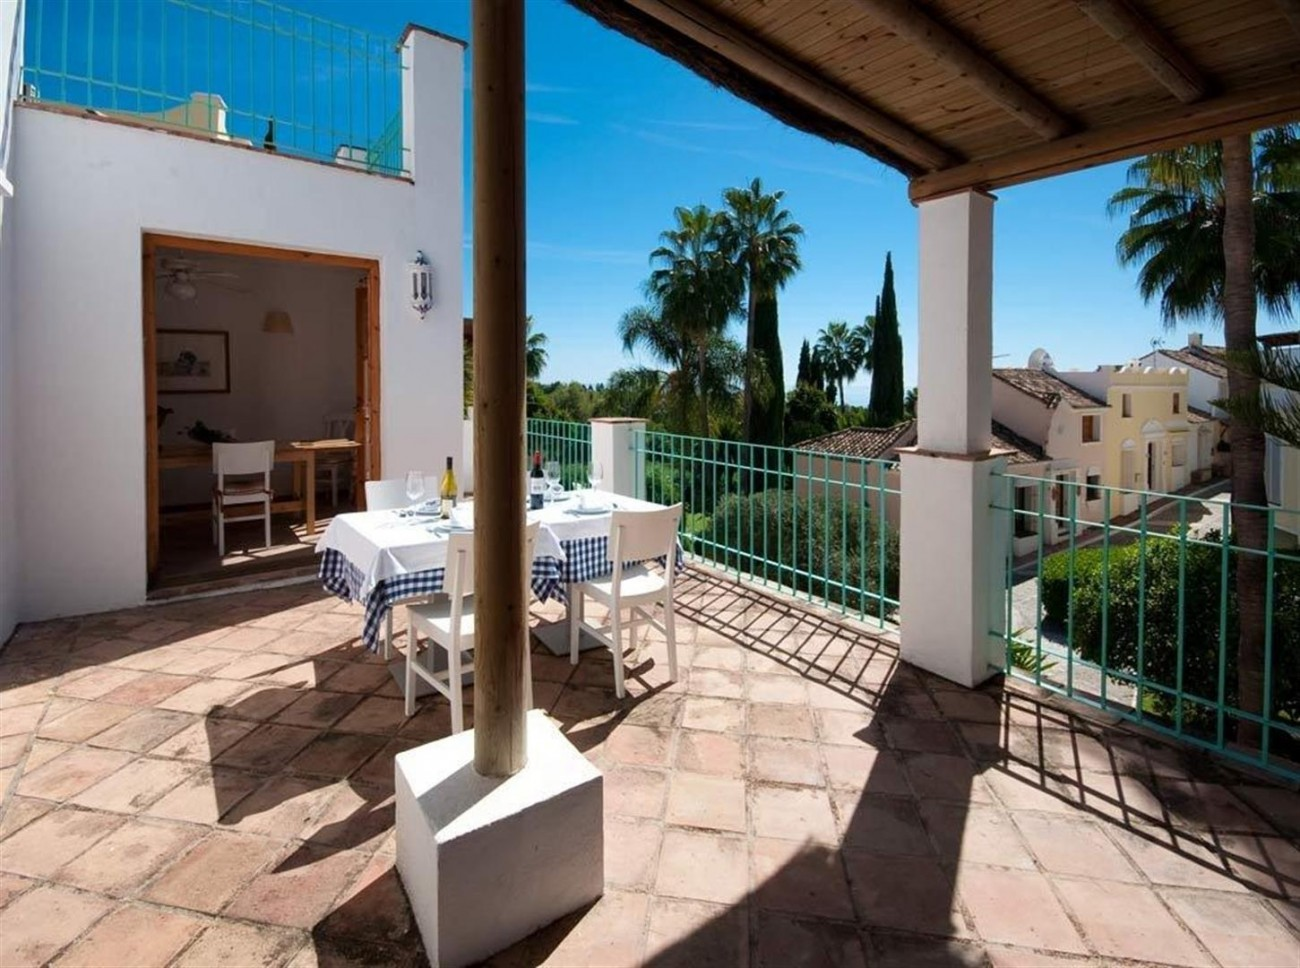 Townhouse for sale Marbella Golden Mile Spain (2) (Large)